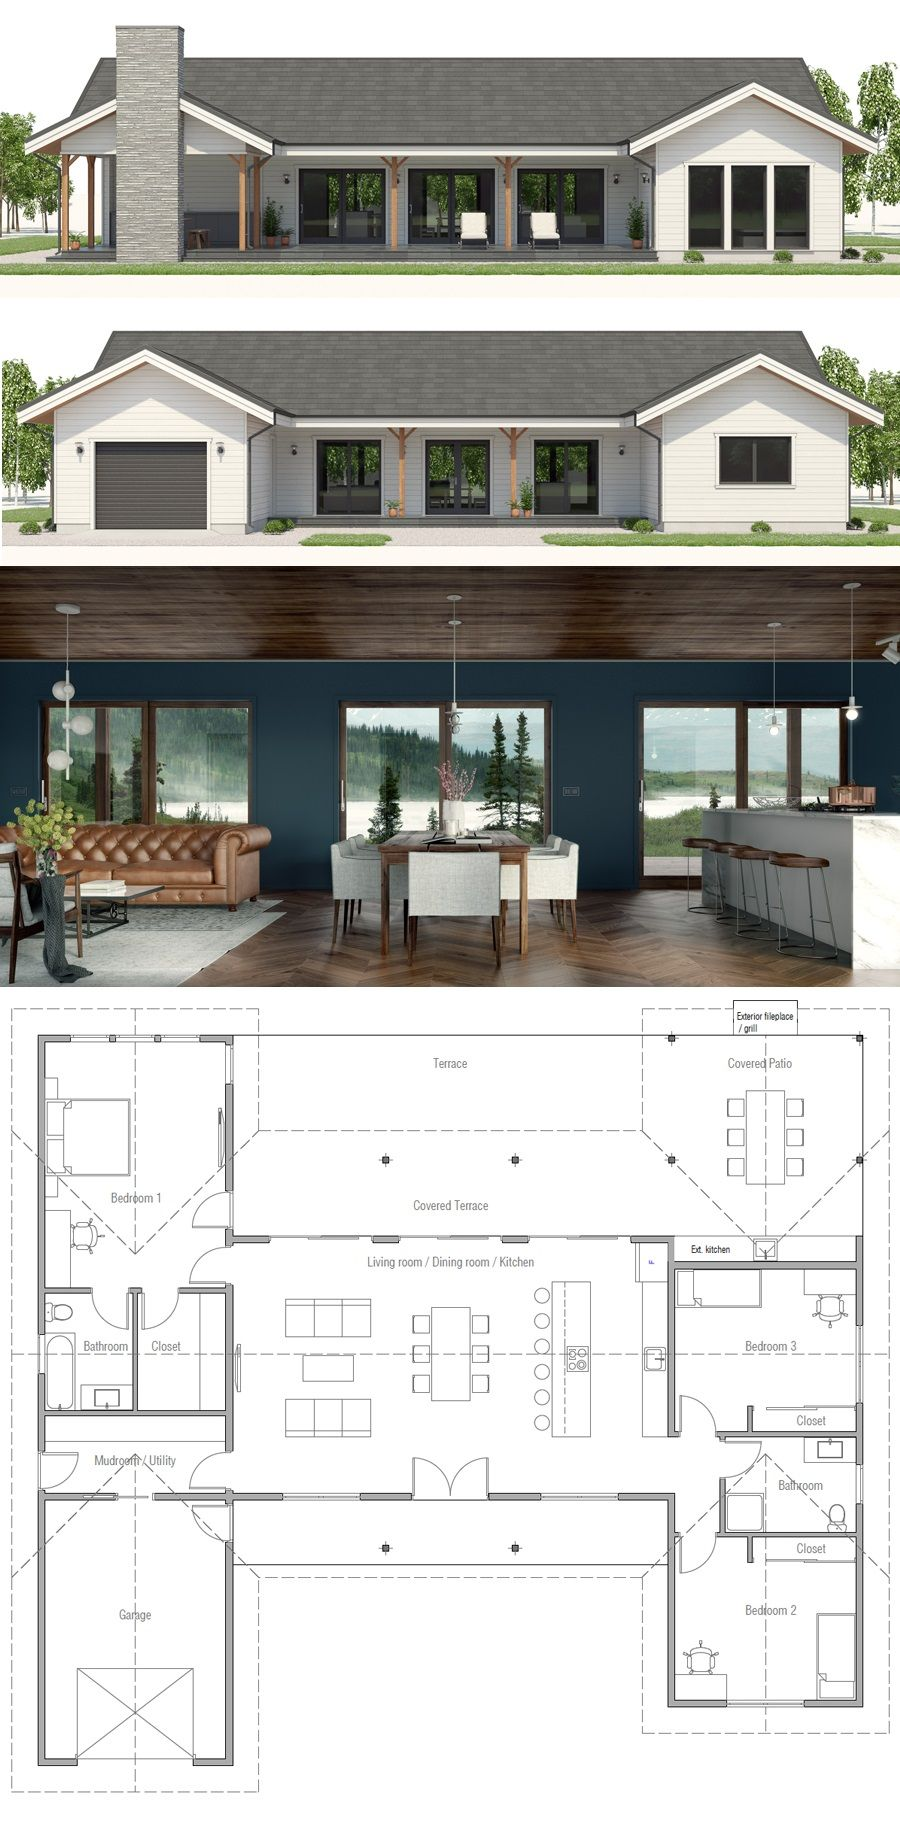 Single Story House Plan New House Plans Modern House Plans Small House Plans